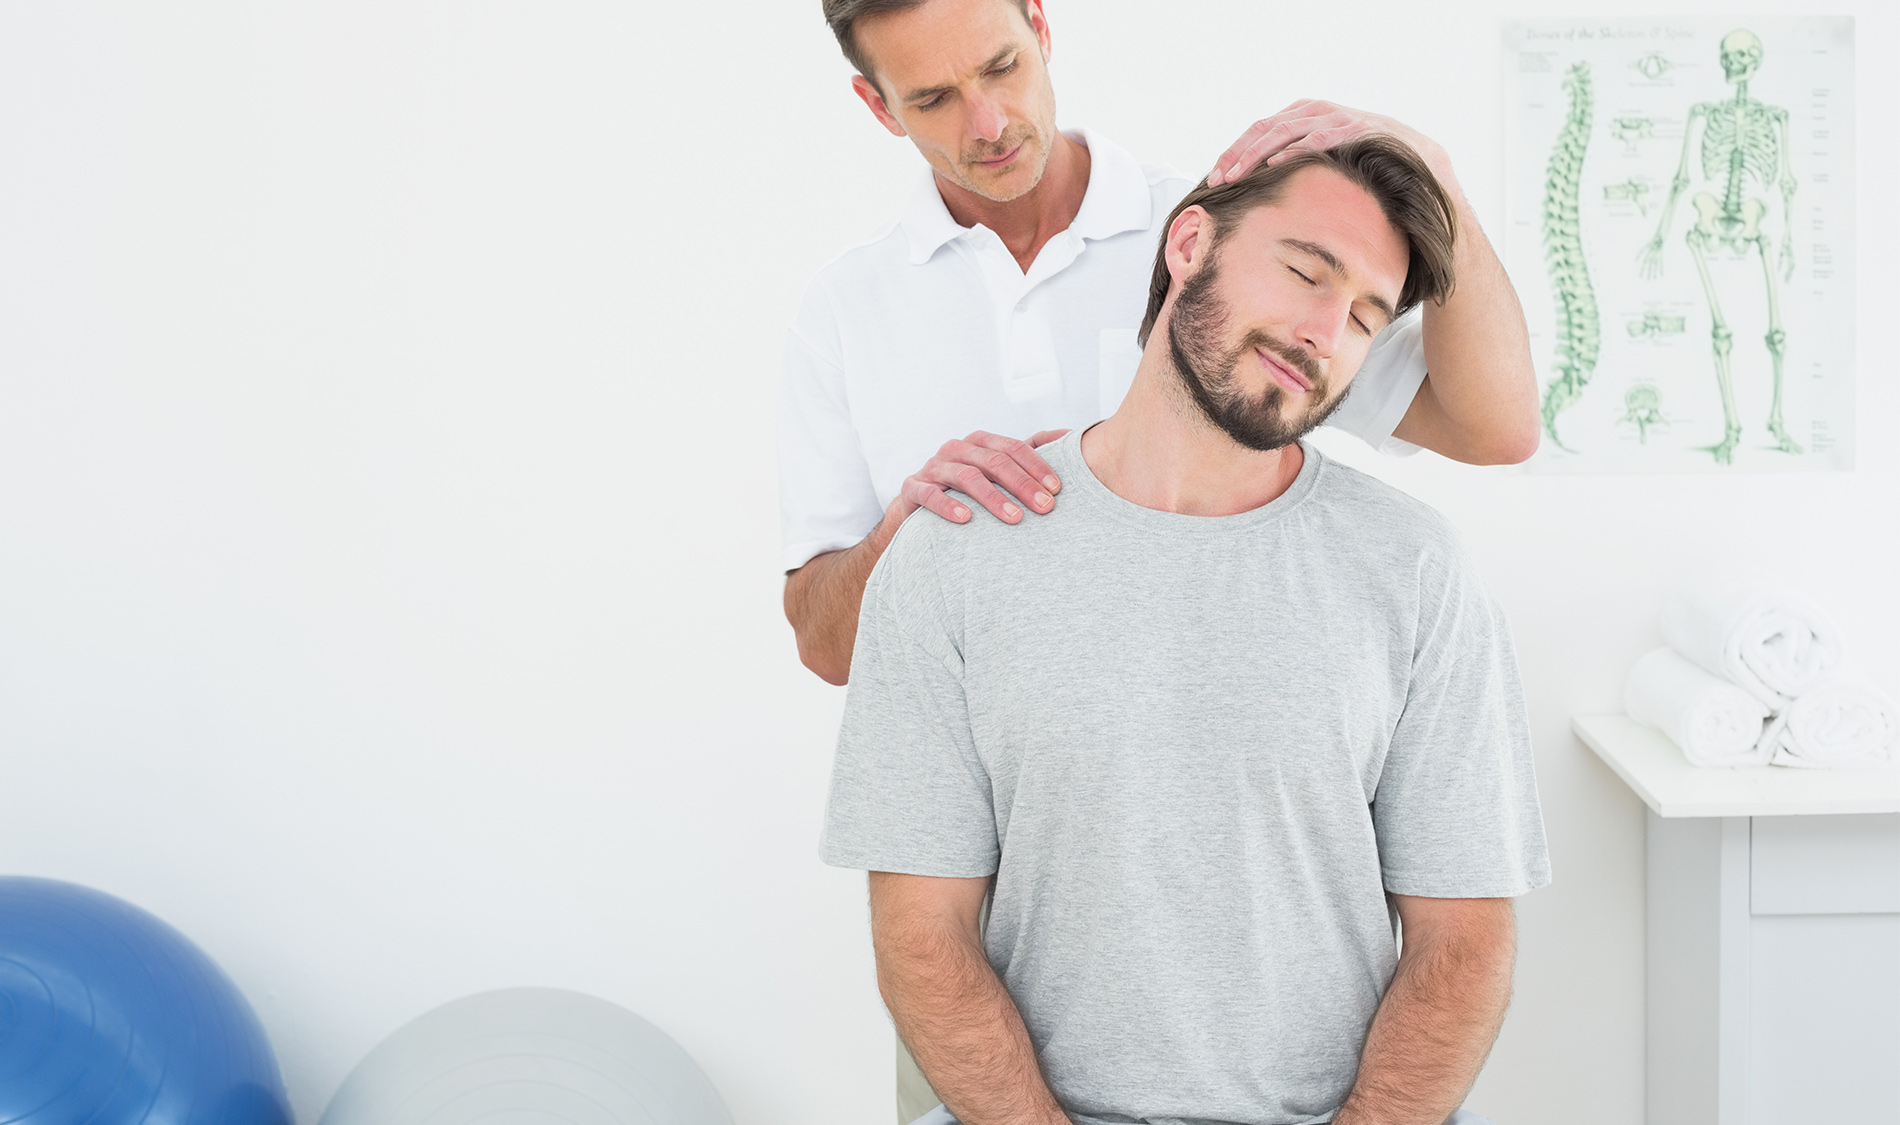 chiropractor adjusting patients spine